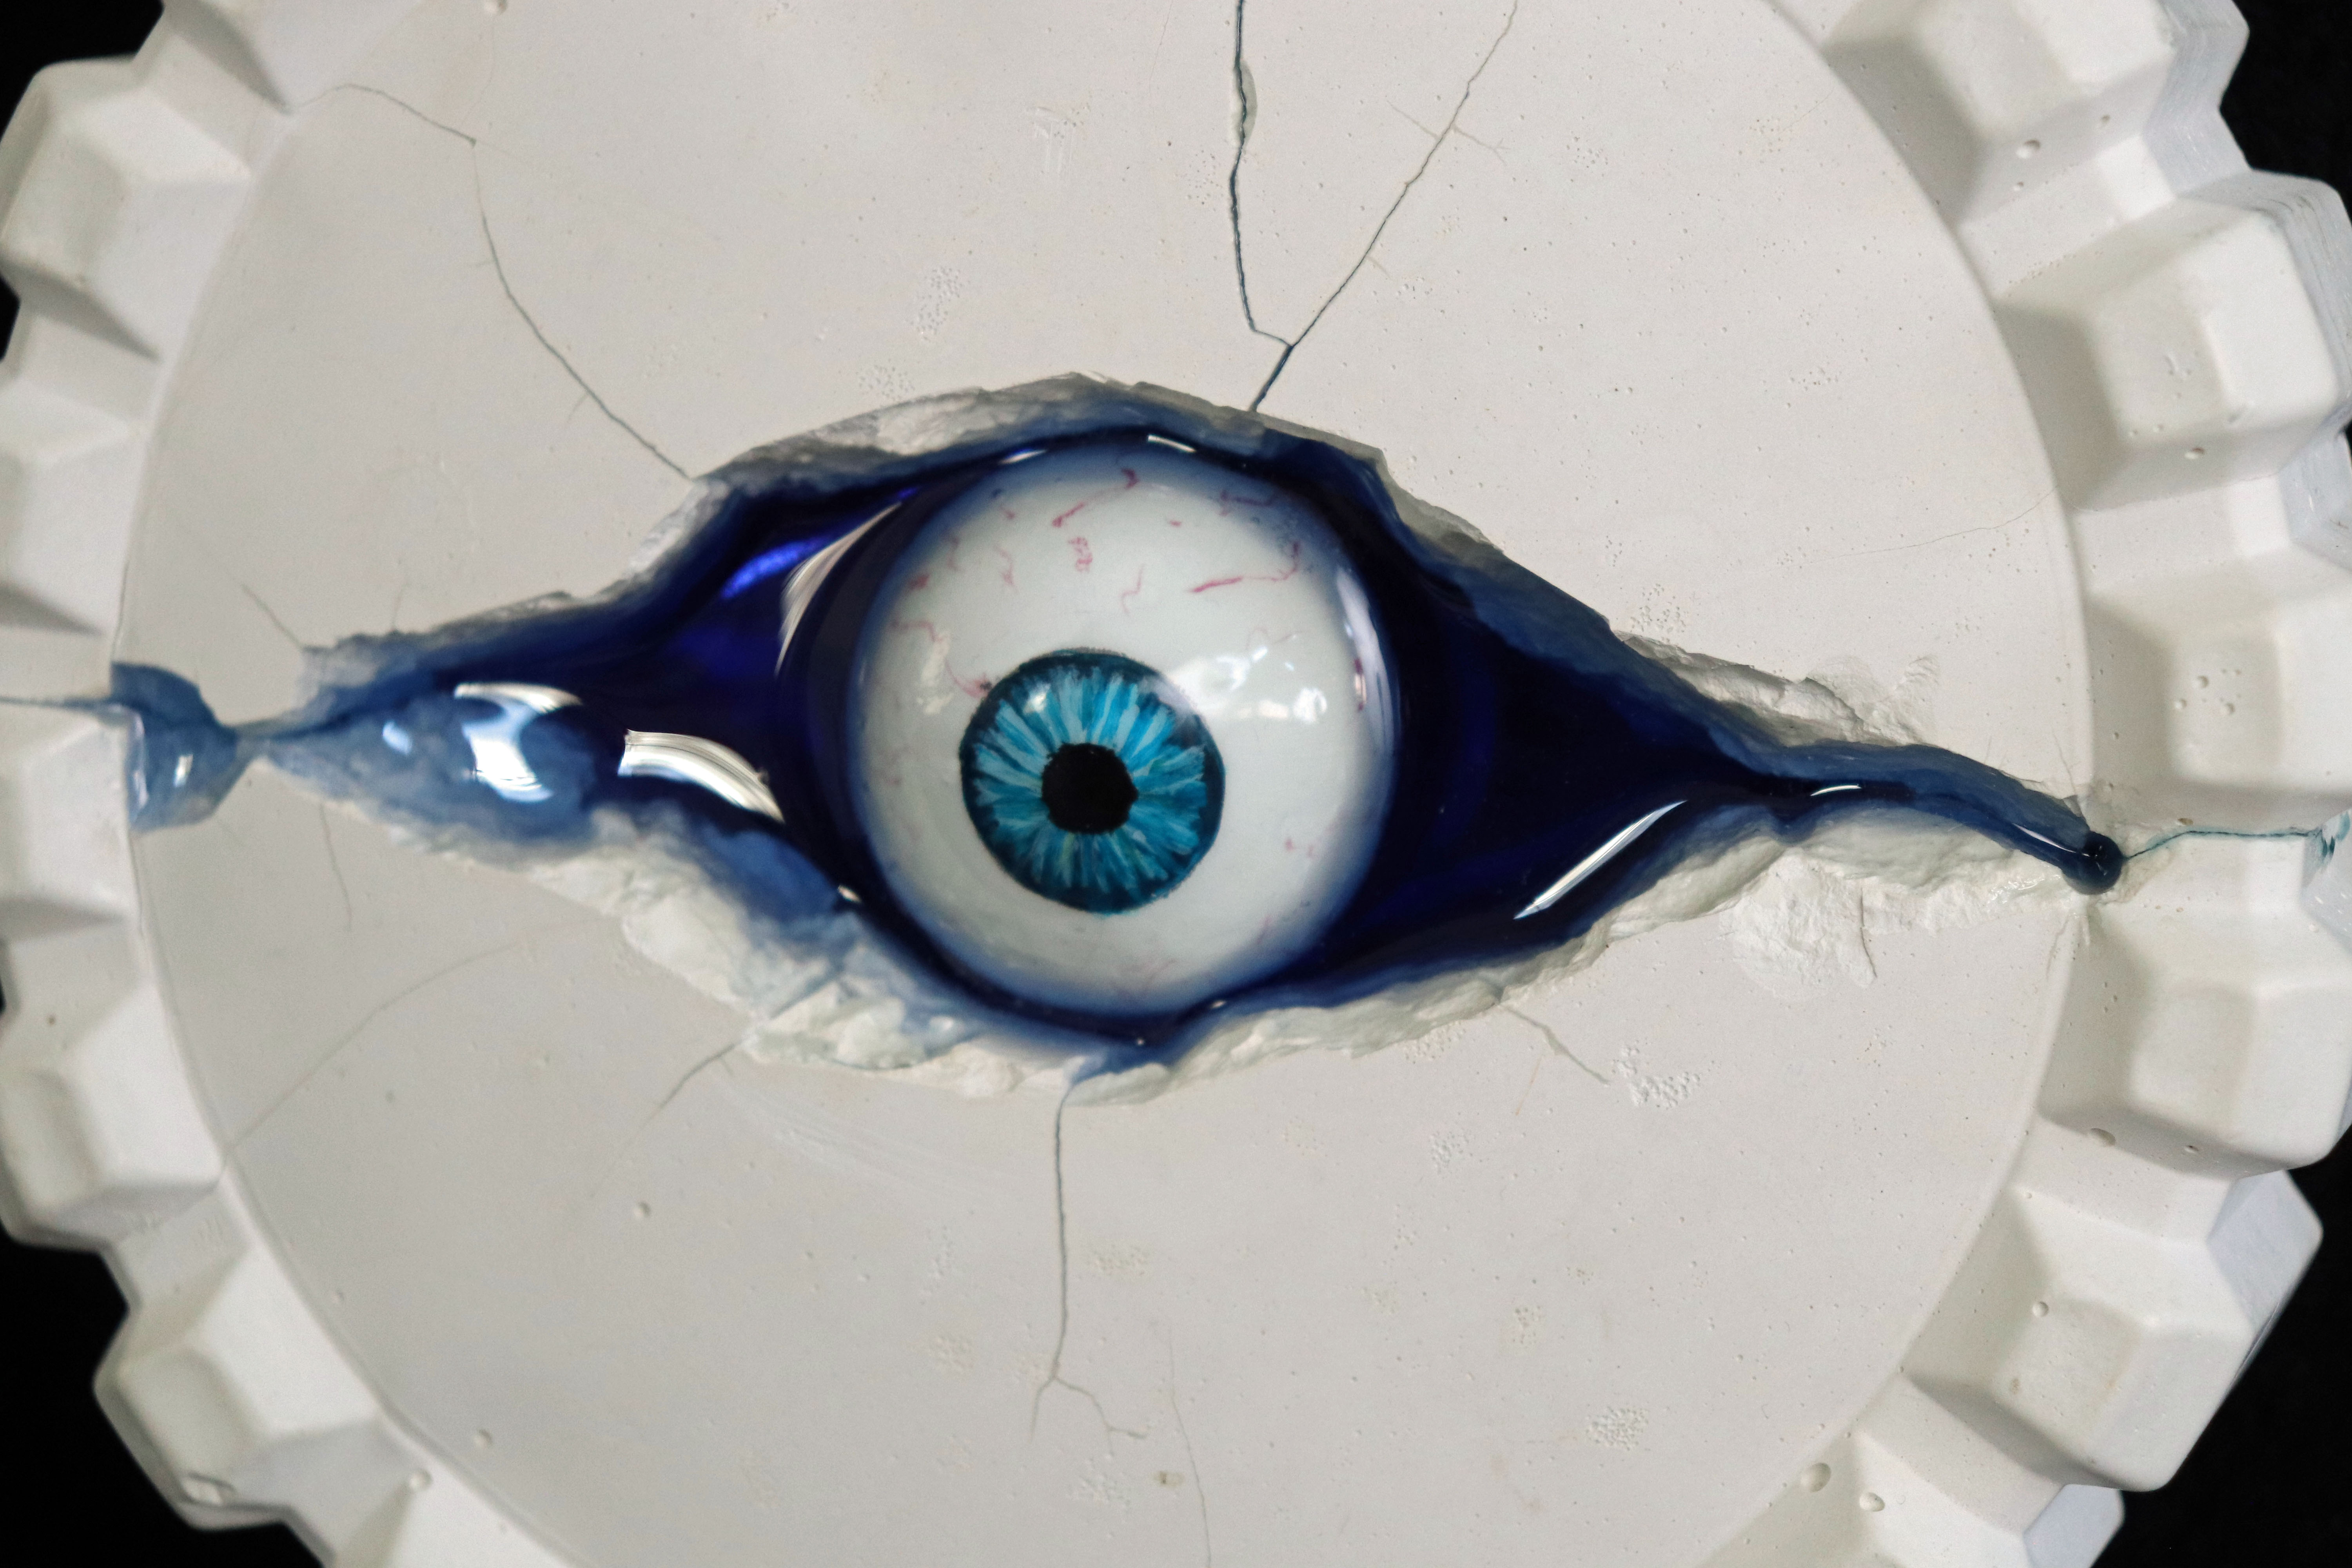 BLUE EYE, detail